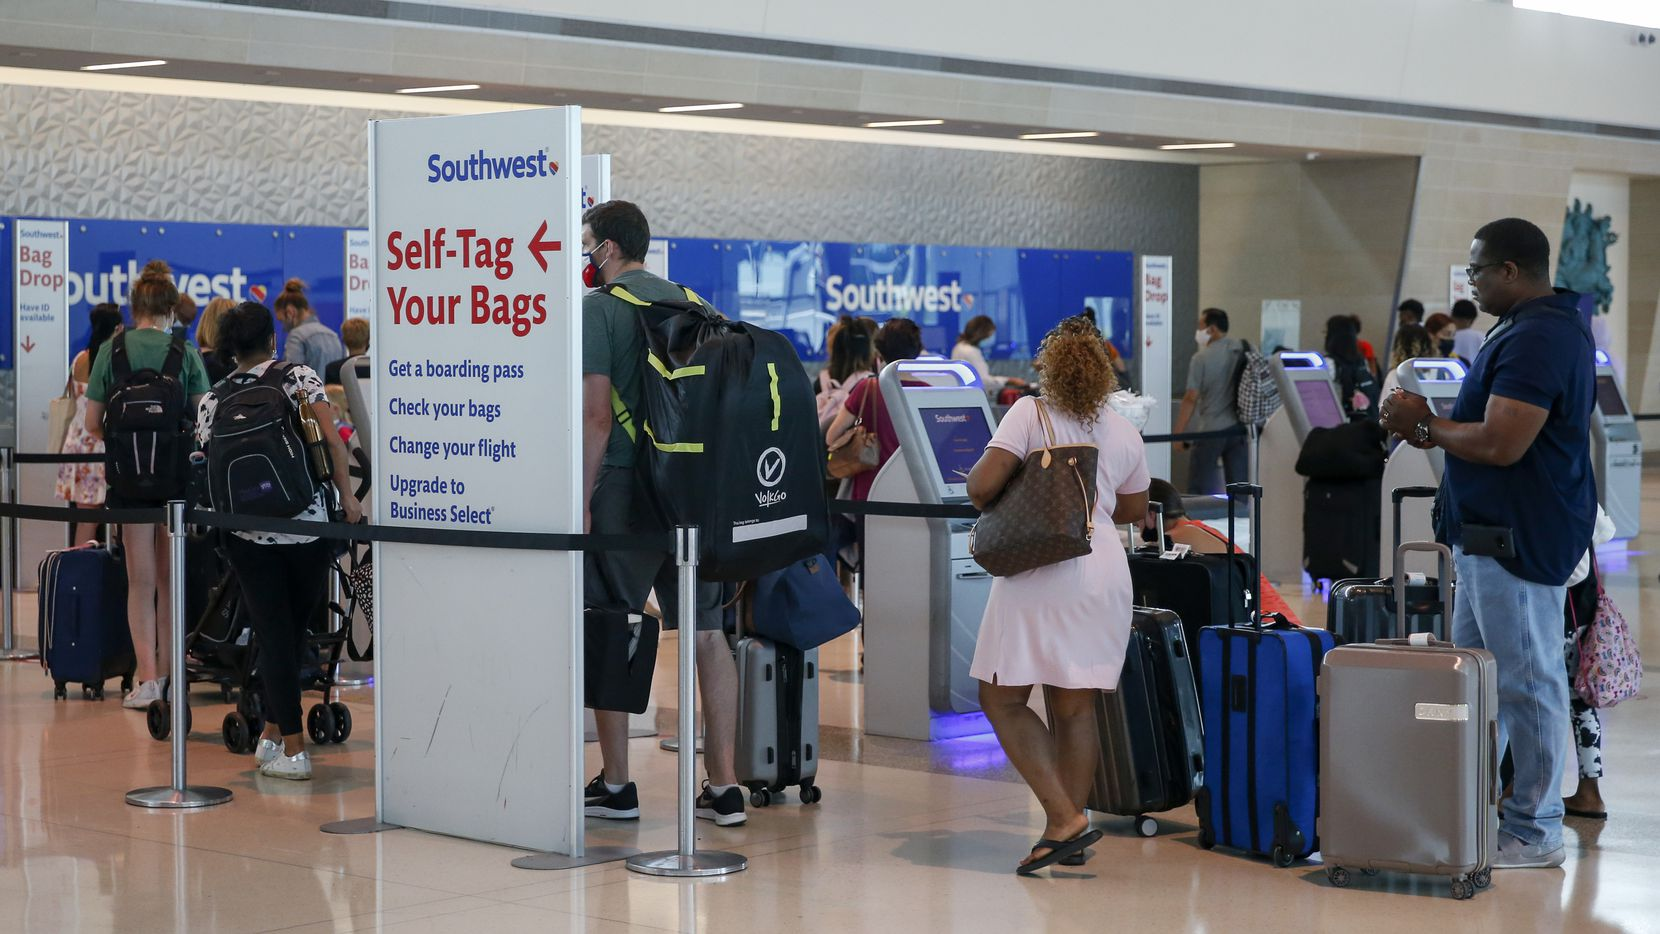 Airline passengers waited to check baggage at a Southwest ticket counter at Dallas Love Field on June 18.